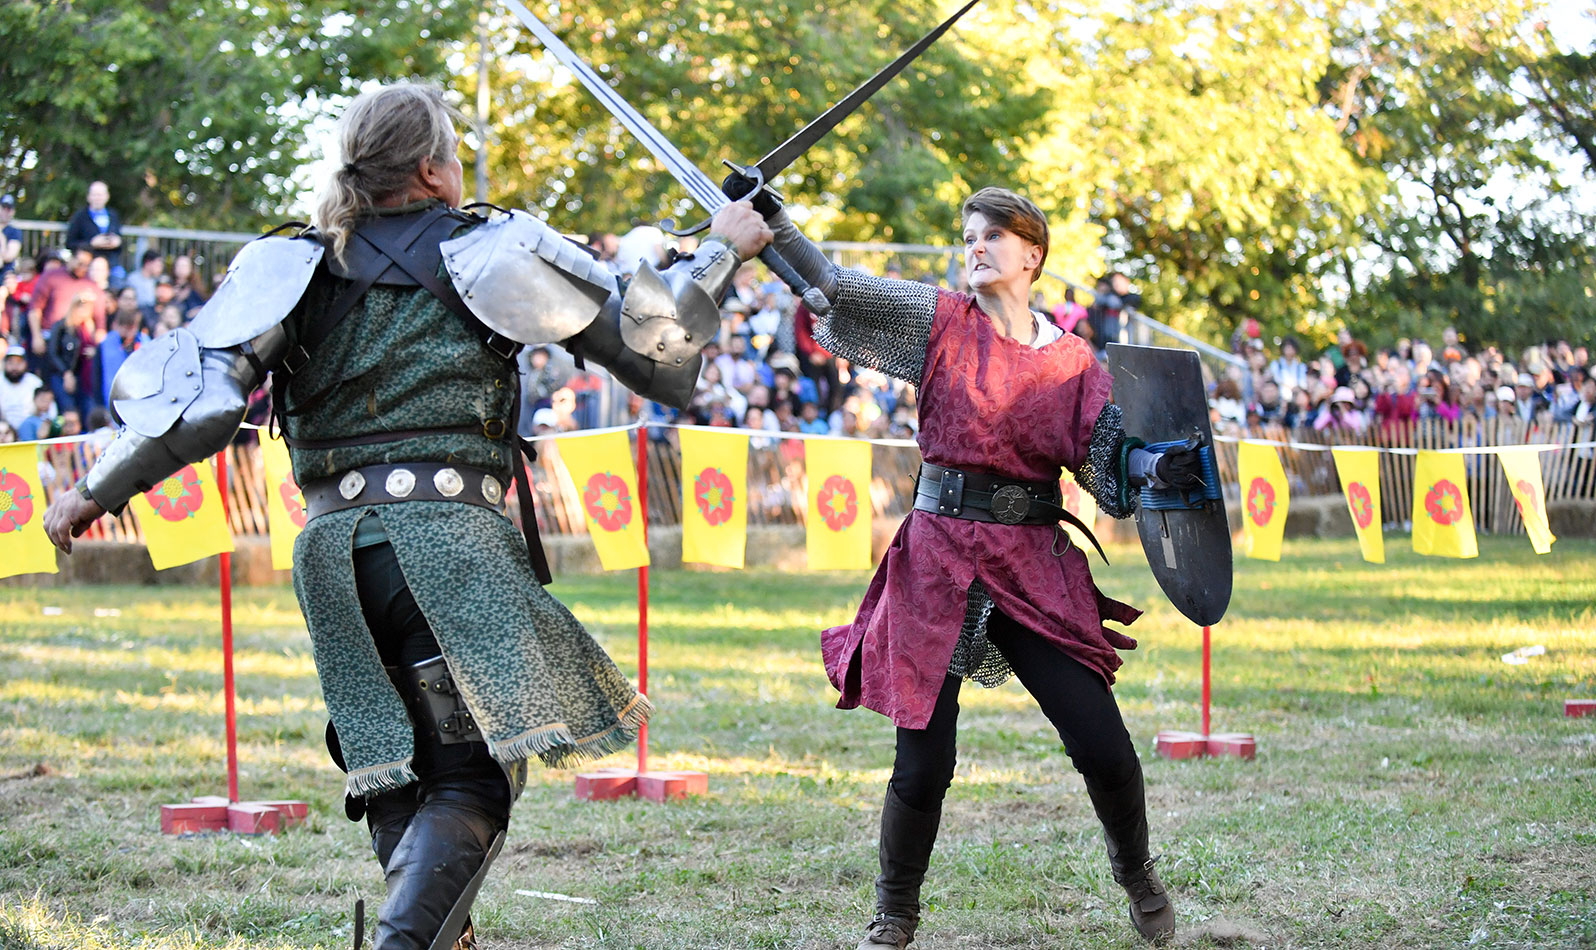 Be sure to come back in the fall when the park transforms into a medieval town with knights, jesters, and performers and guests in period costumes for the 35th Annual Medieval Festival against the backdrop of the Cloisters museum.